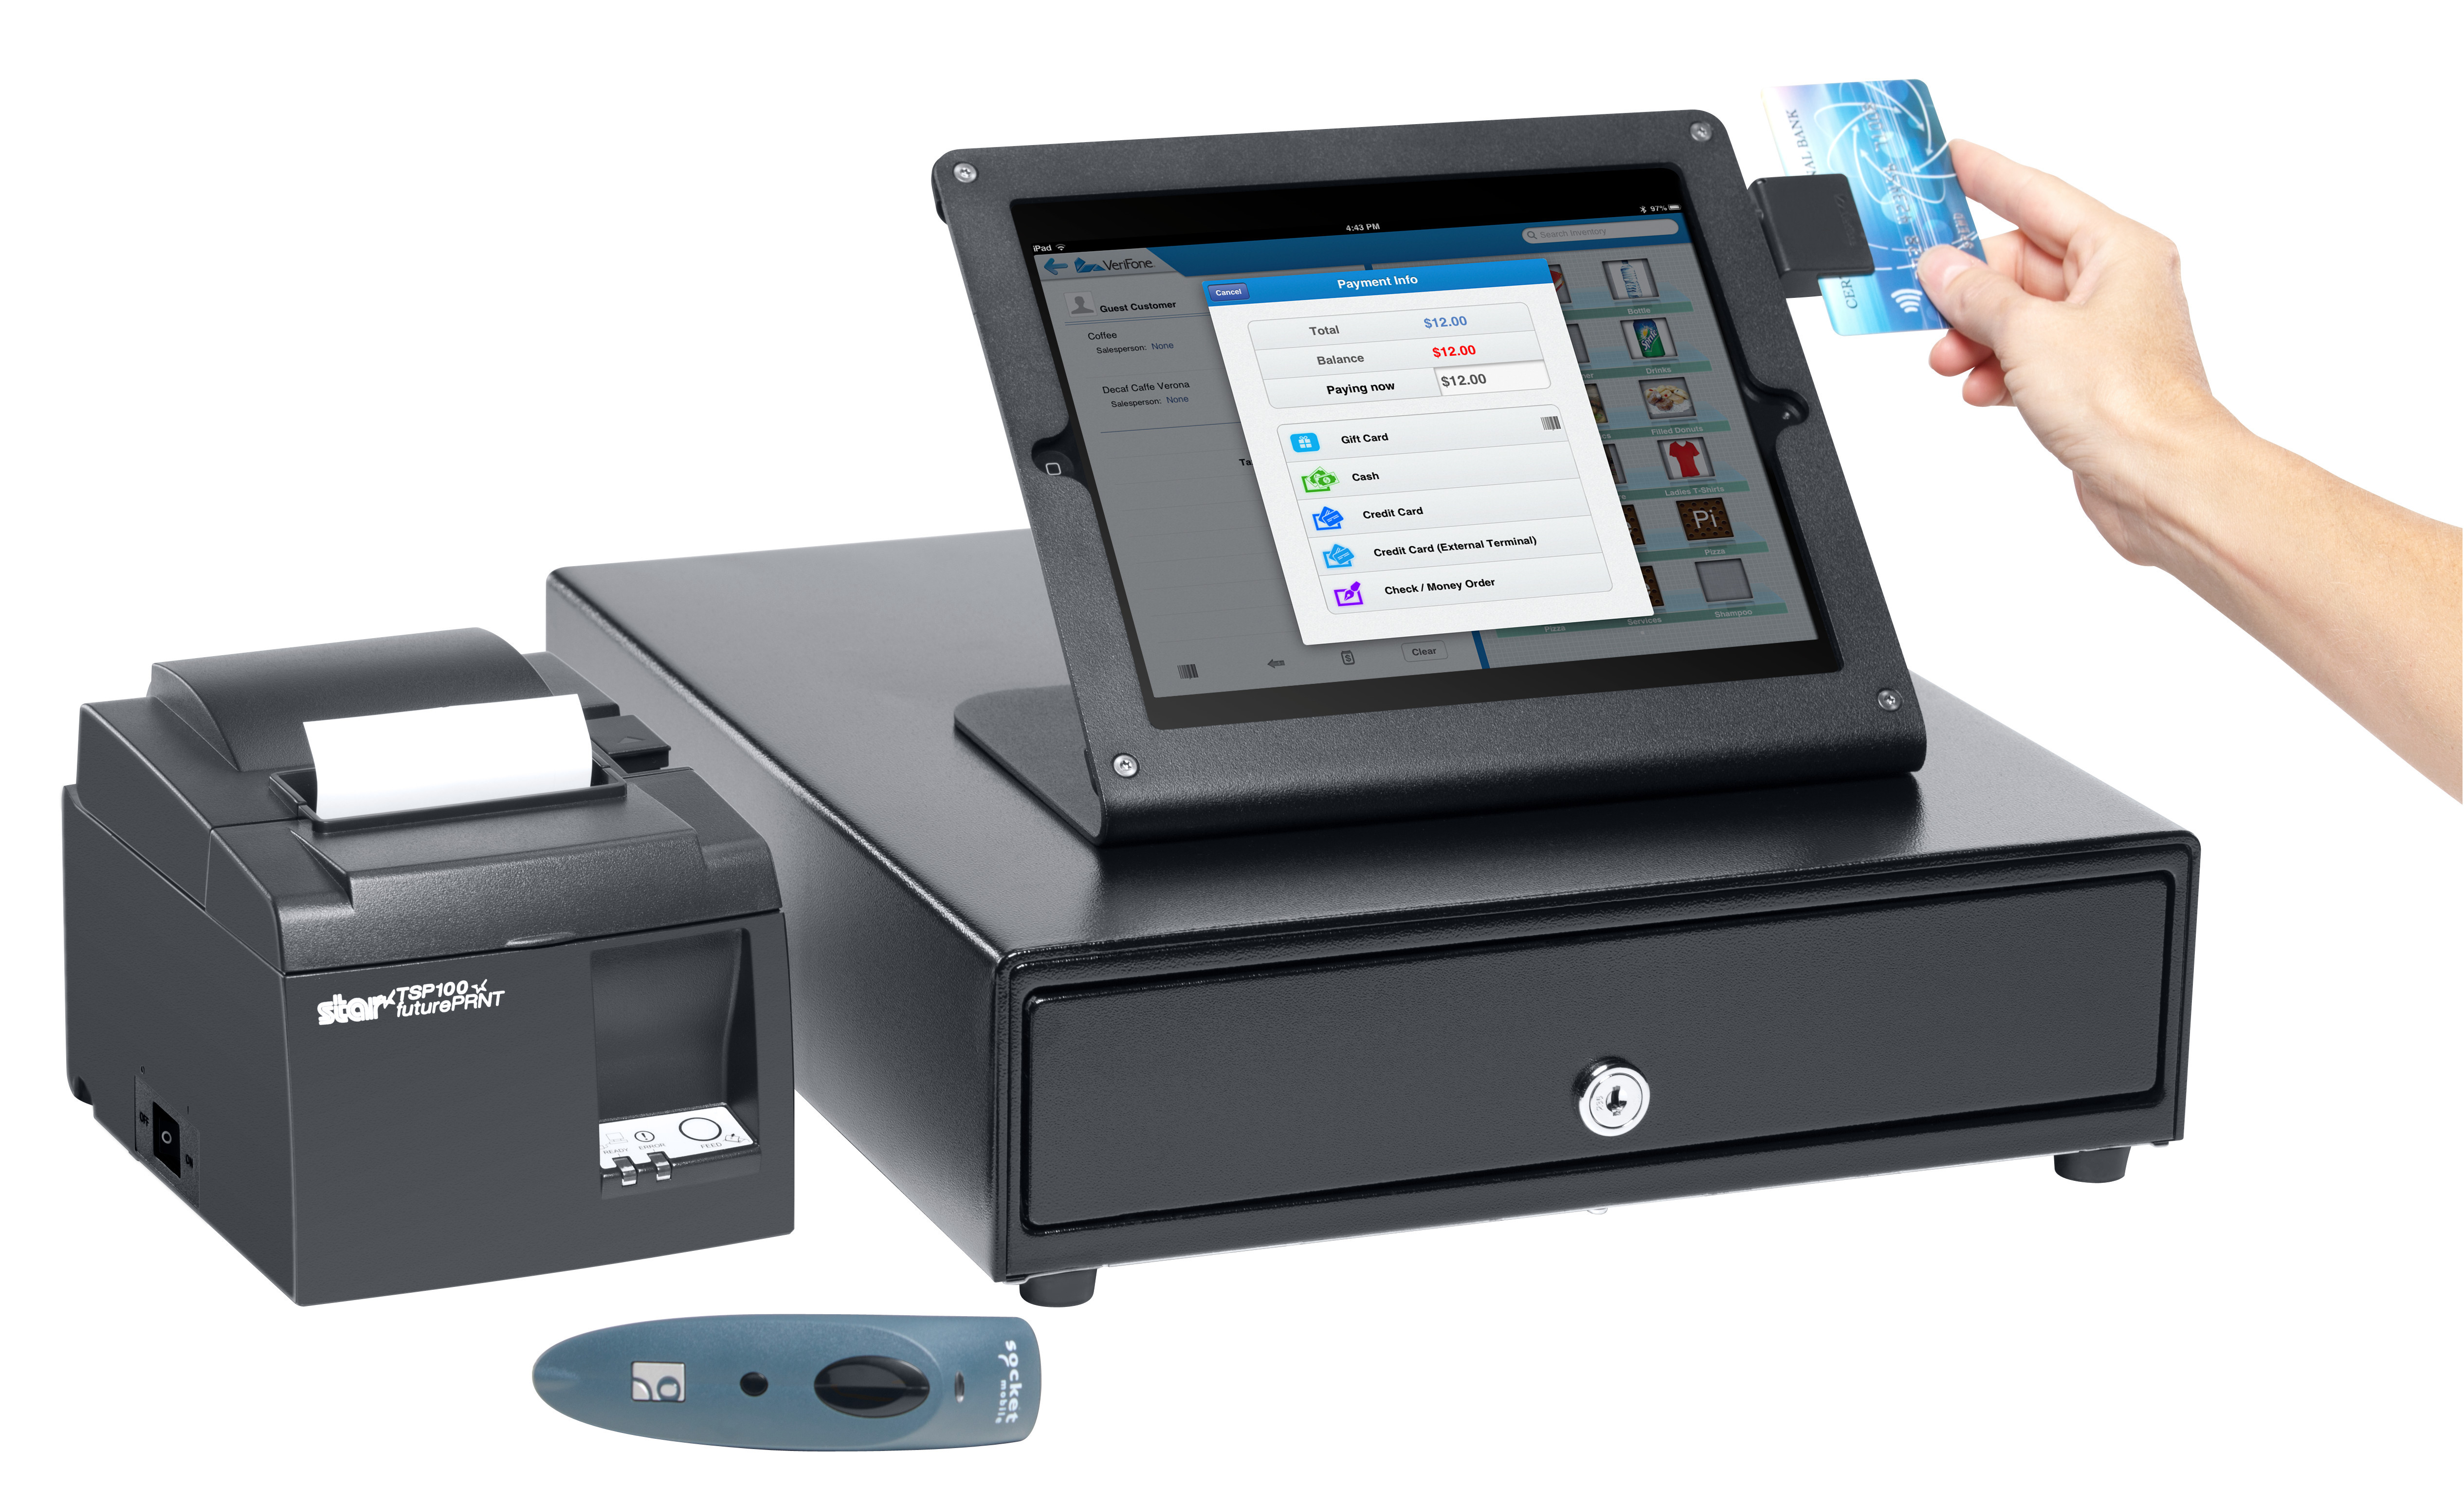 VeriFone Delivers POS Software Platform for Tablets to ISOs and ...